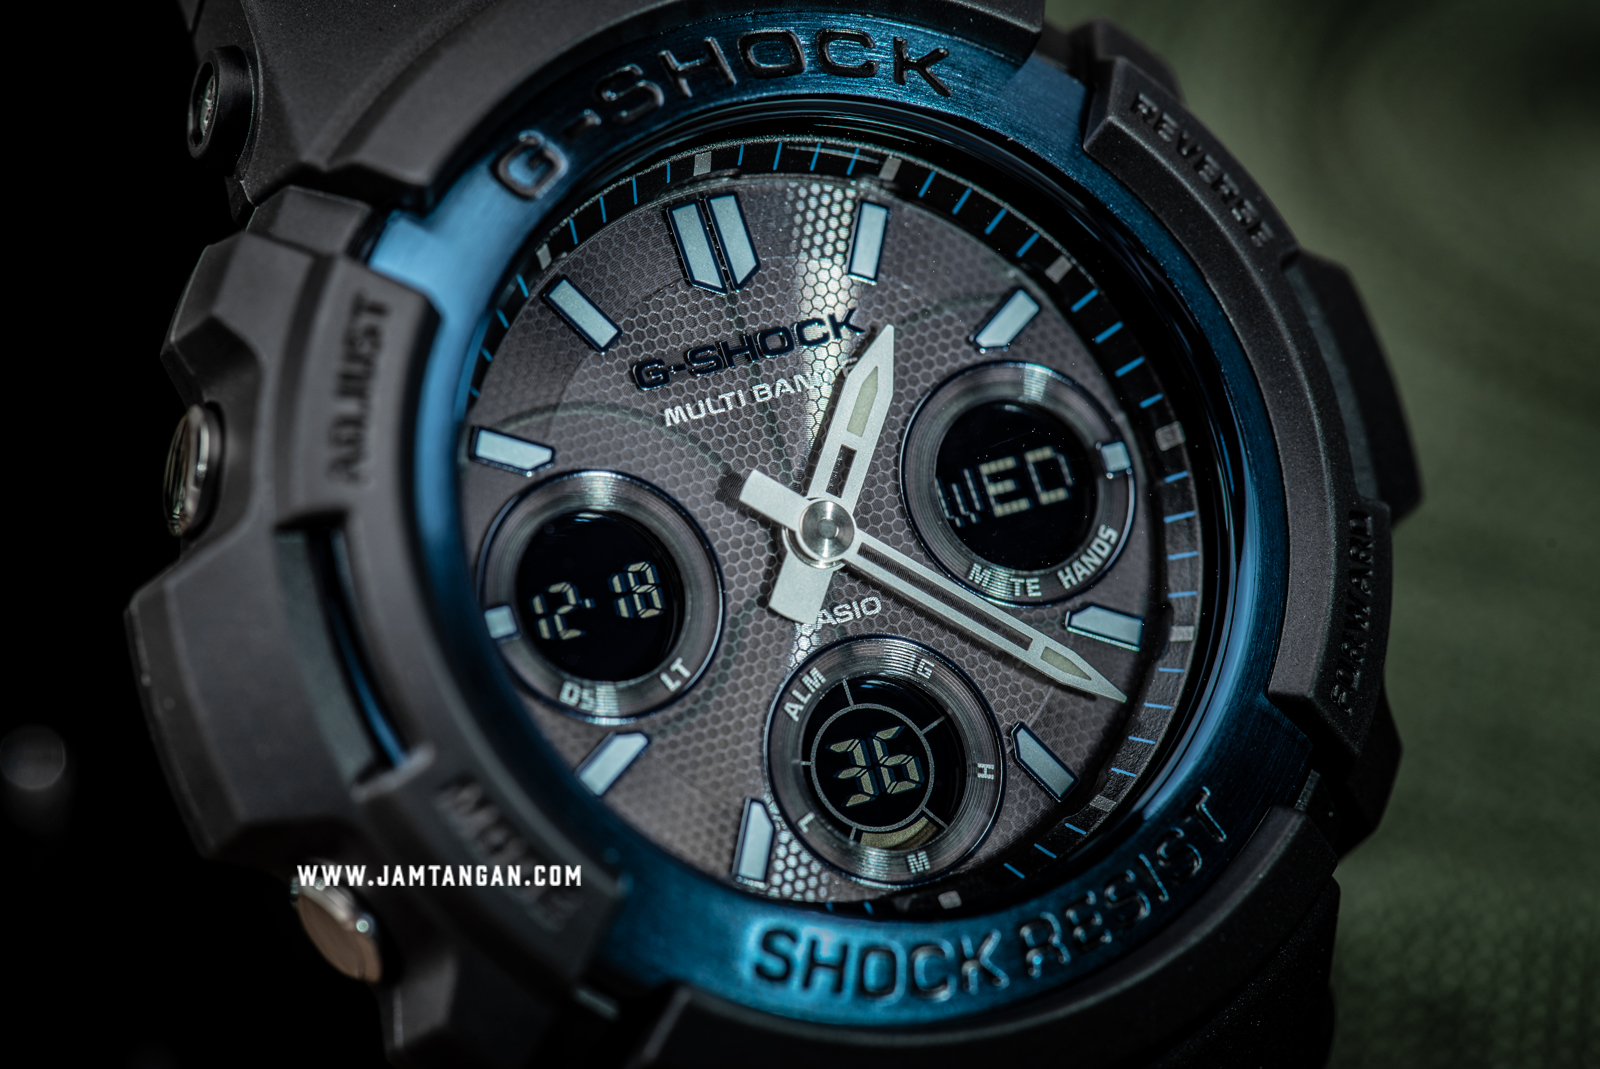 Casio G-Shock AWG-M100BC-2AJF Multiband 6 Tough Solar Resin Band Machtwatch